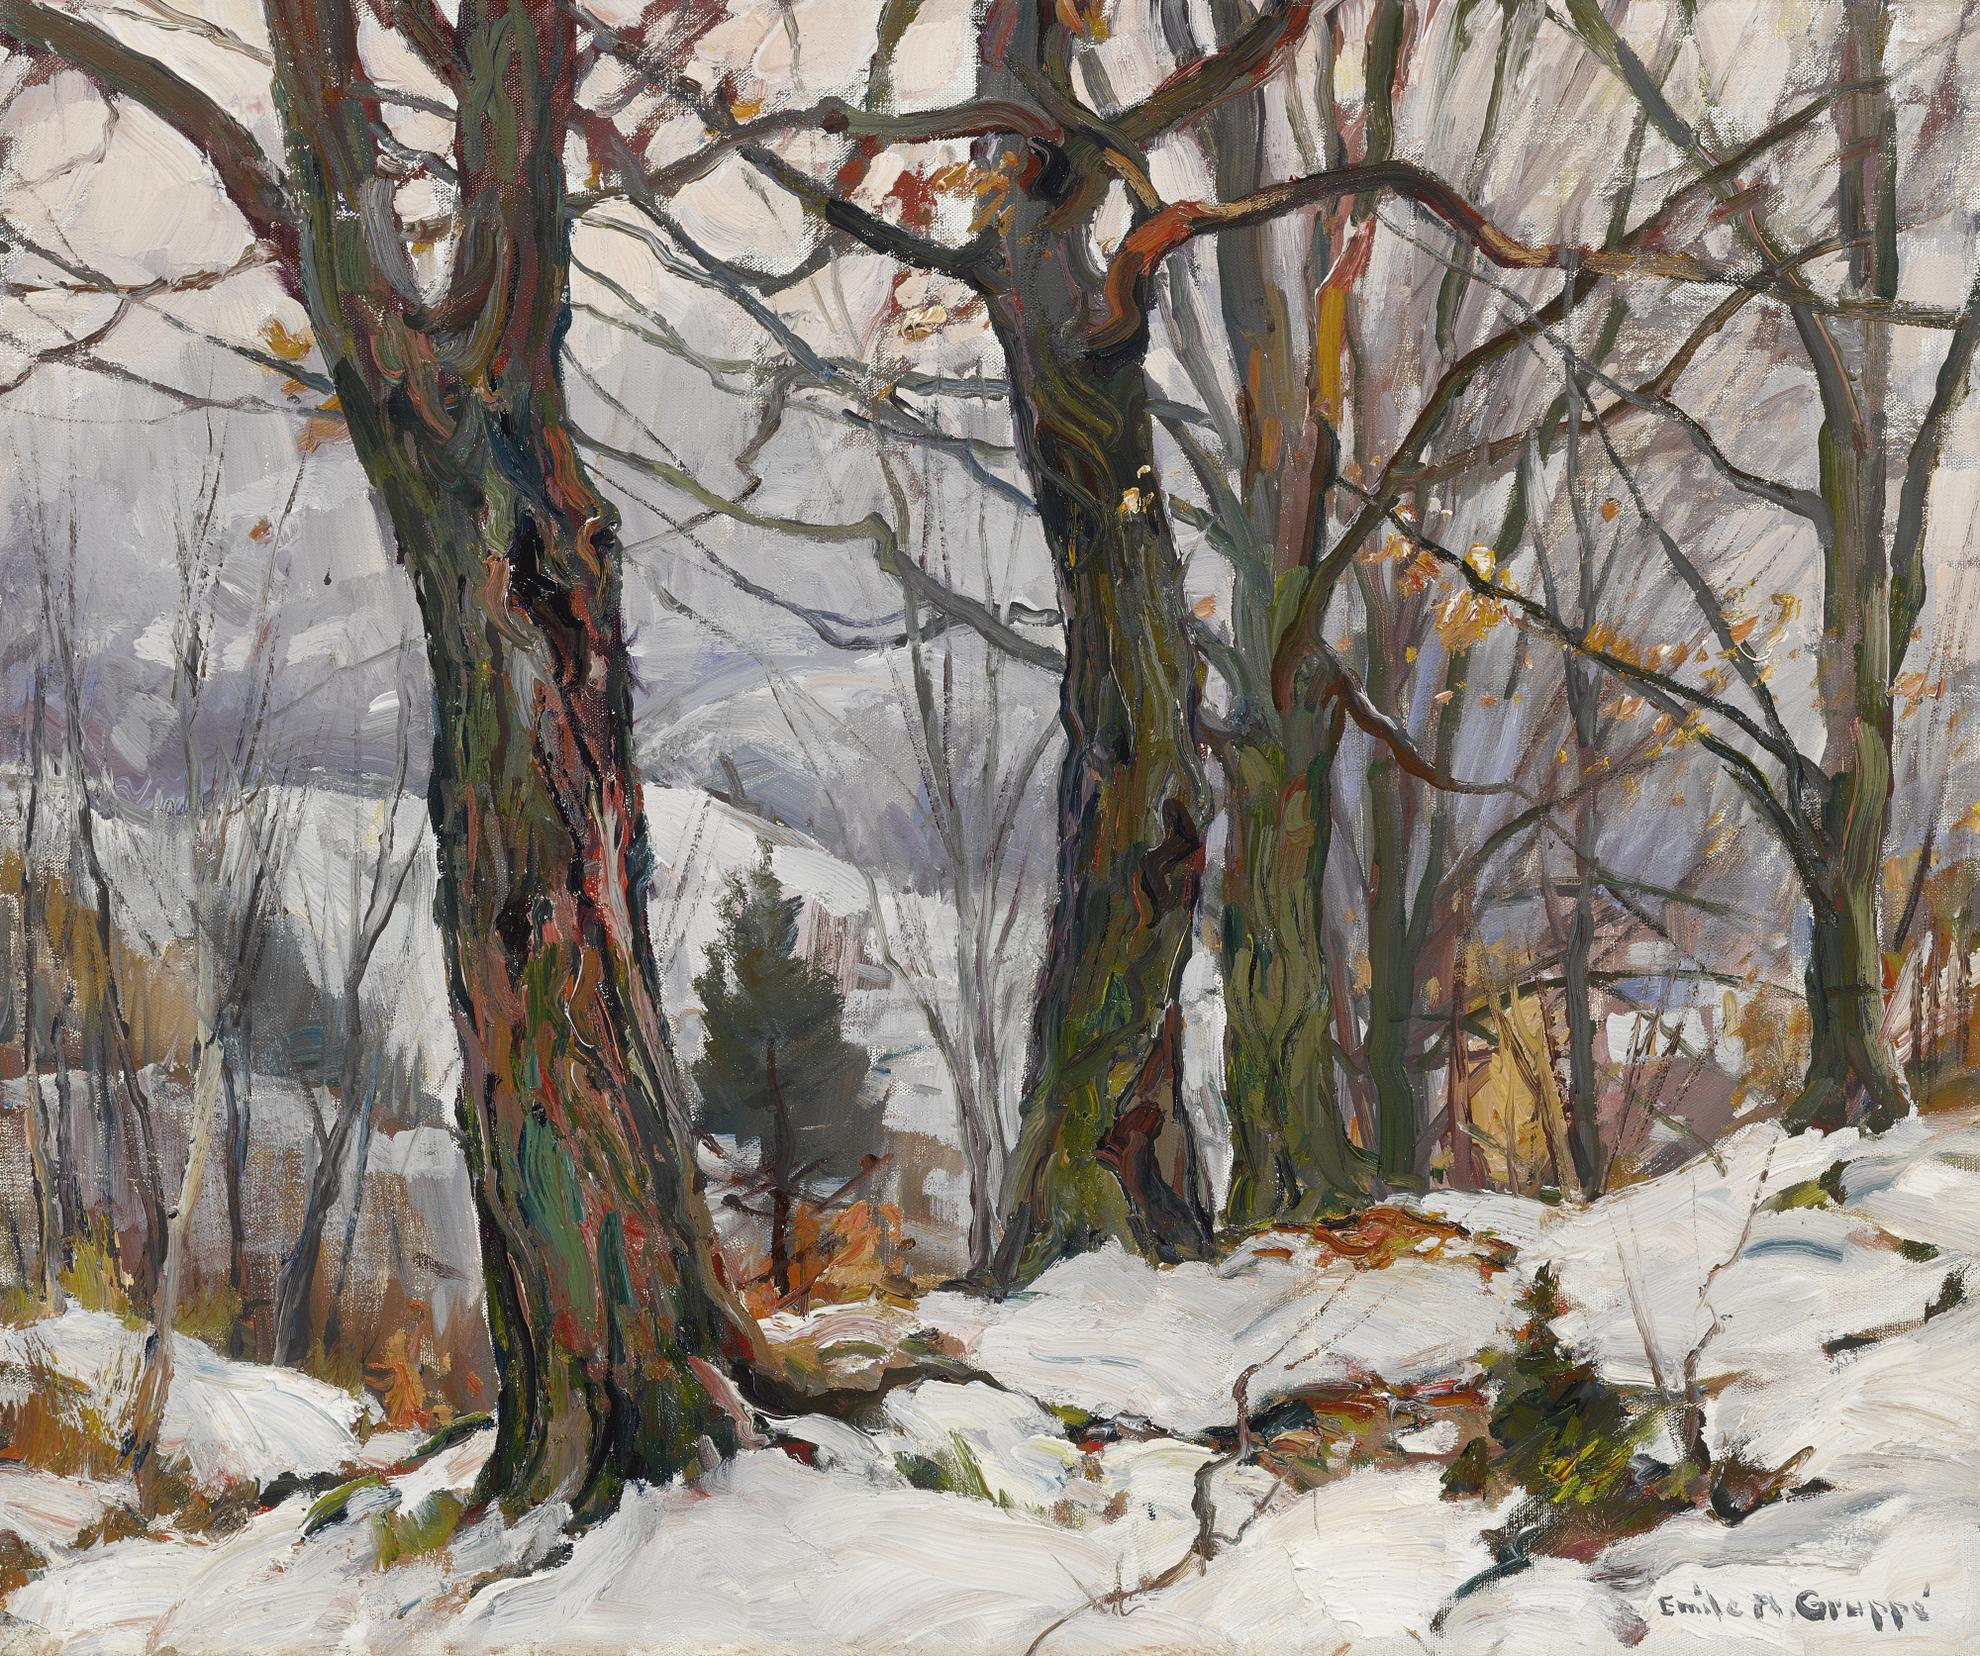 Emile Albert Gruppe - First Snow, Vt-